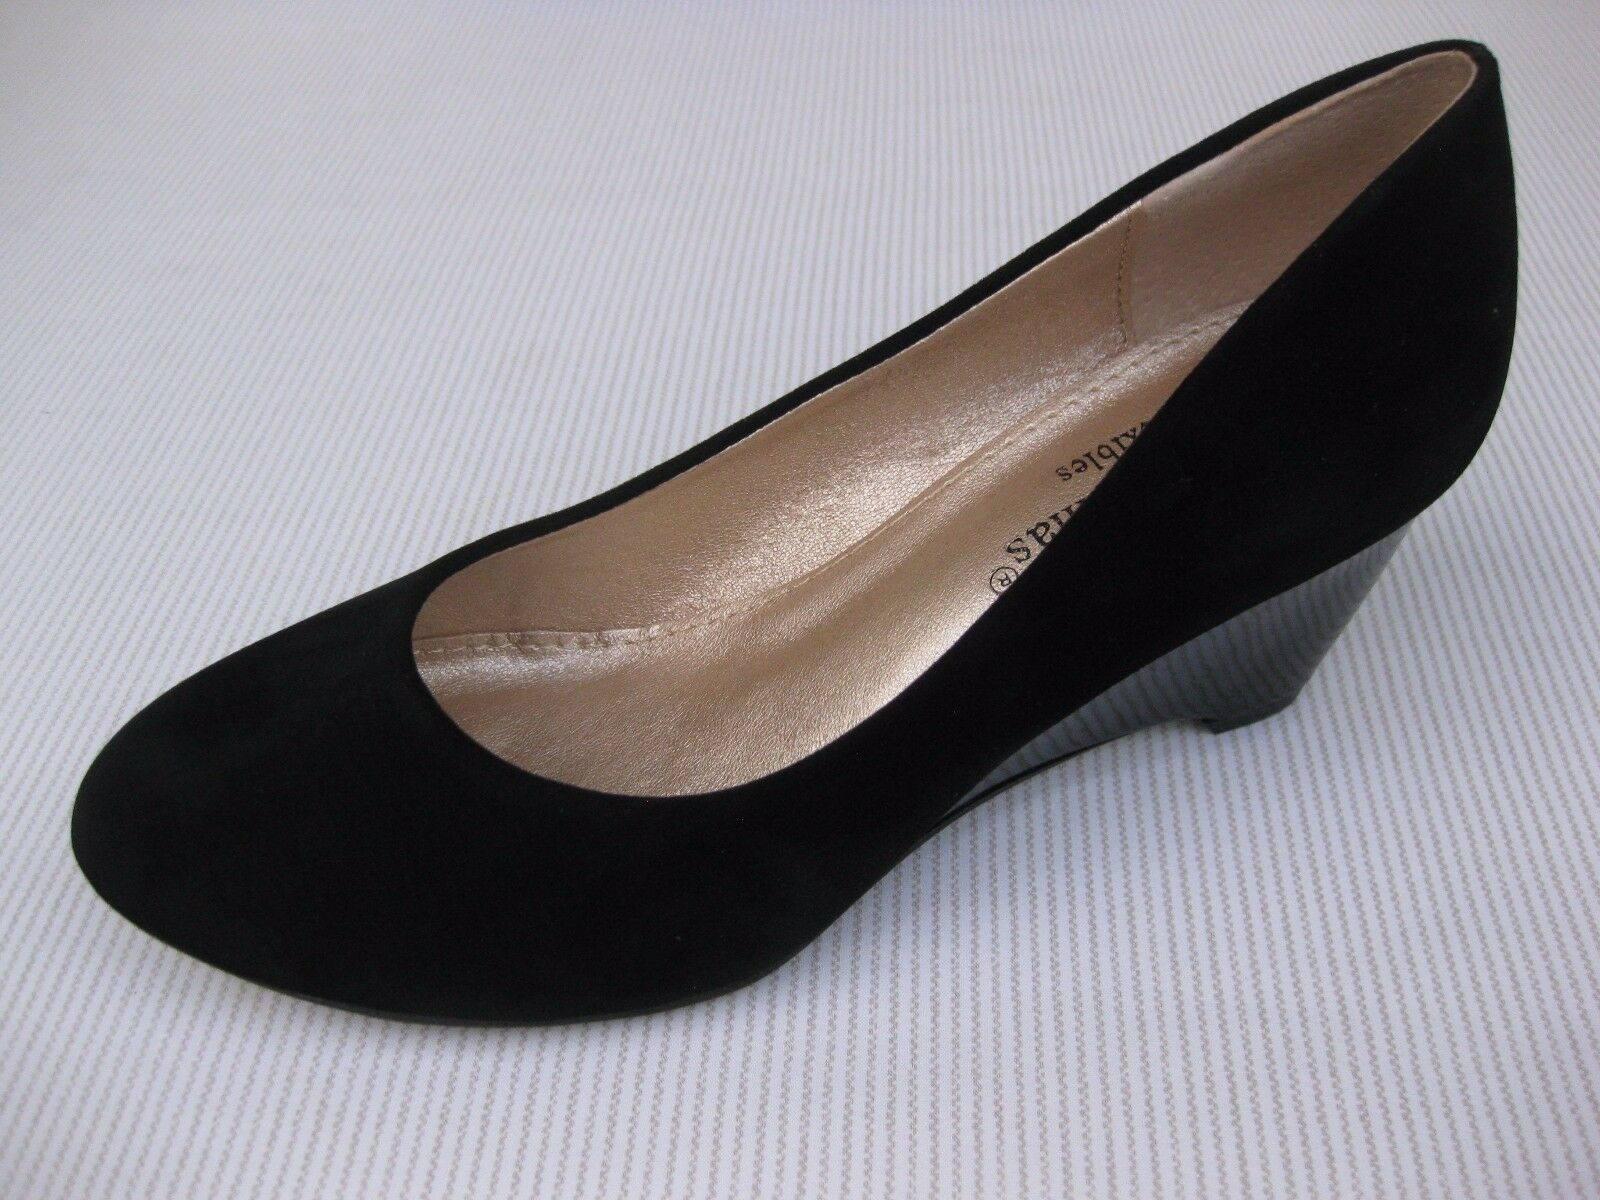 Pierre Dumas Womens Shoes NEW Patent $48 Nelly-1 Black Suede Patent NEW Wedge 6.5 M 4e046a